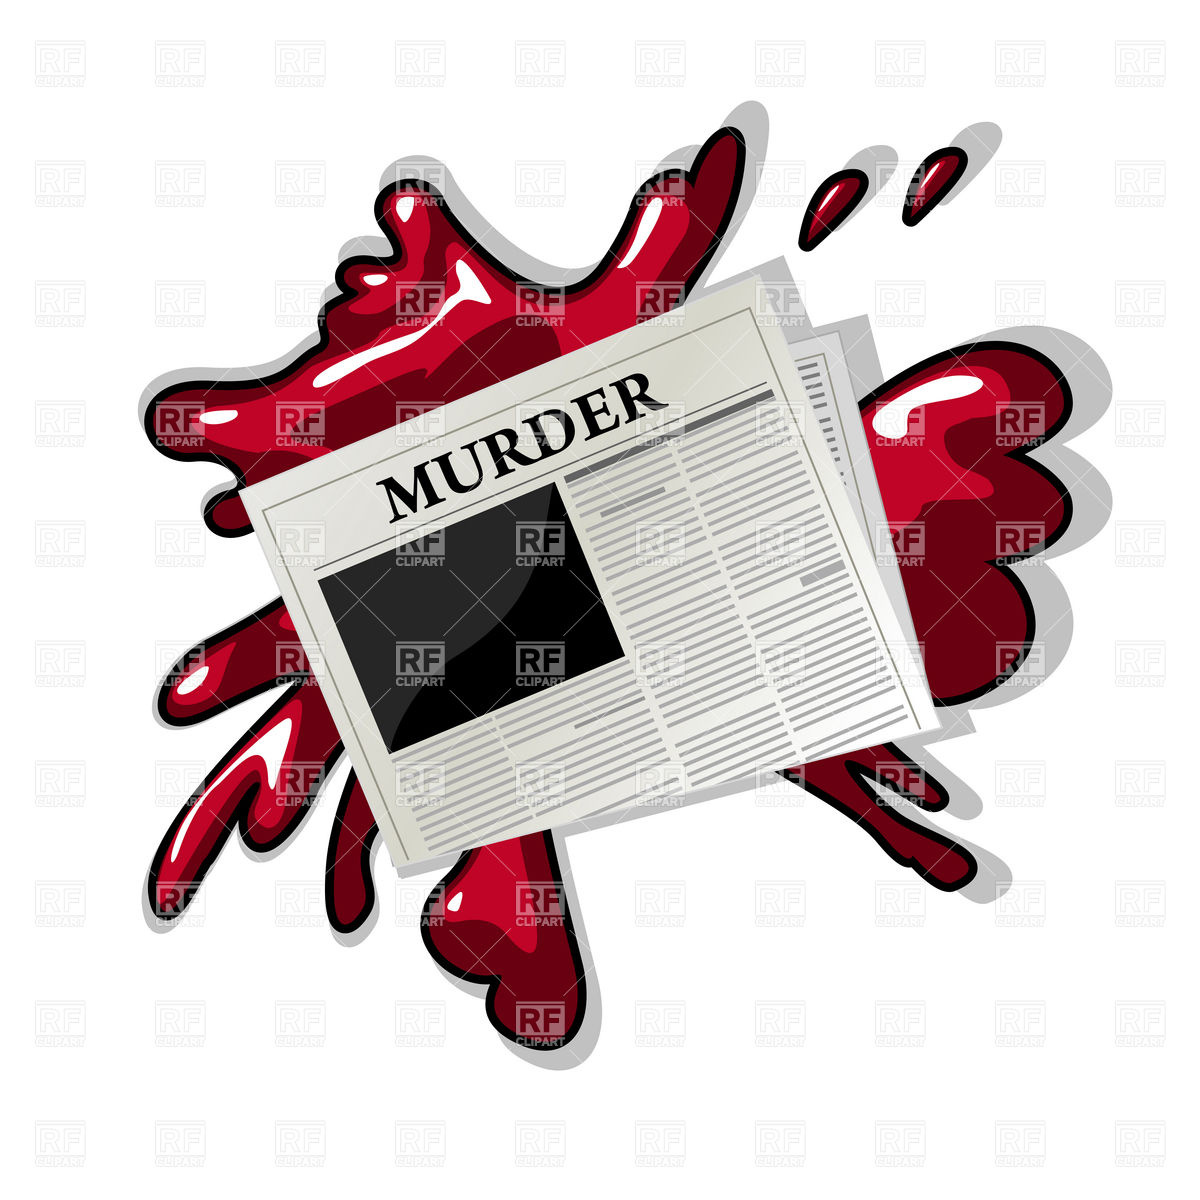 Murder clip art free. Mystery clipart homicide detective